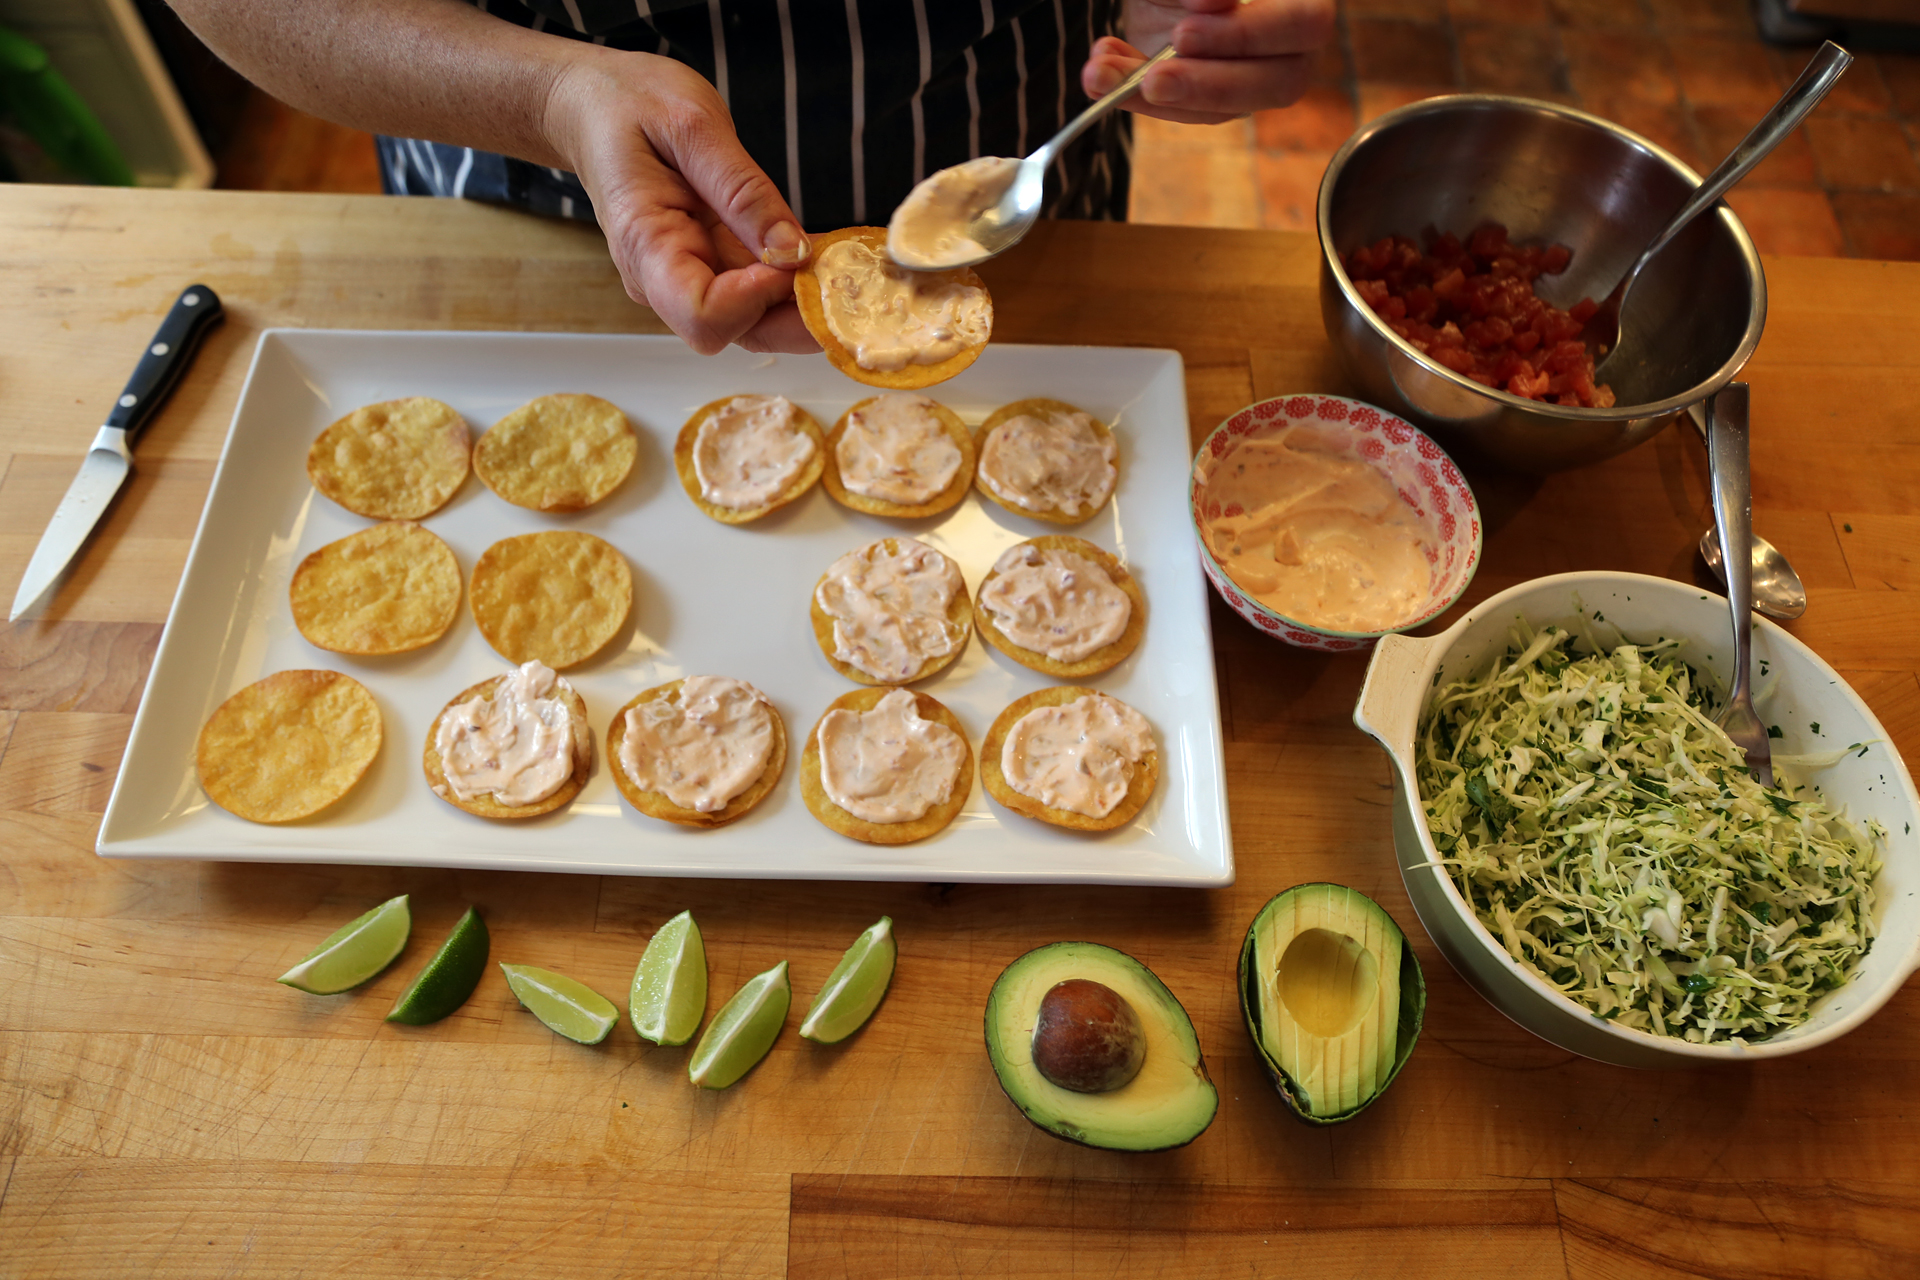 For each tostada, spread a little of the mayo mixture on the tostada shell.